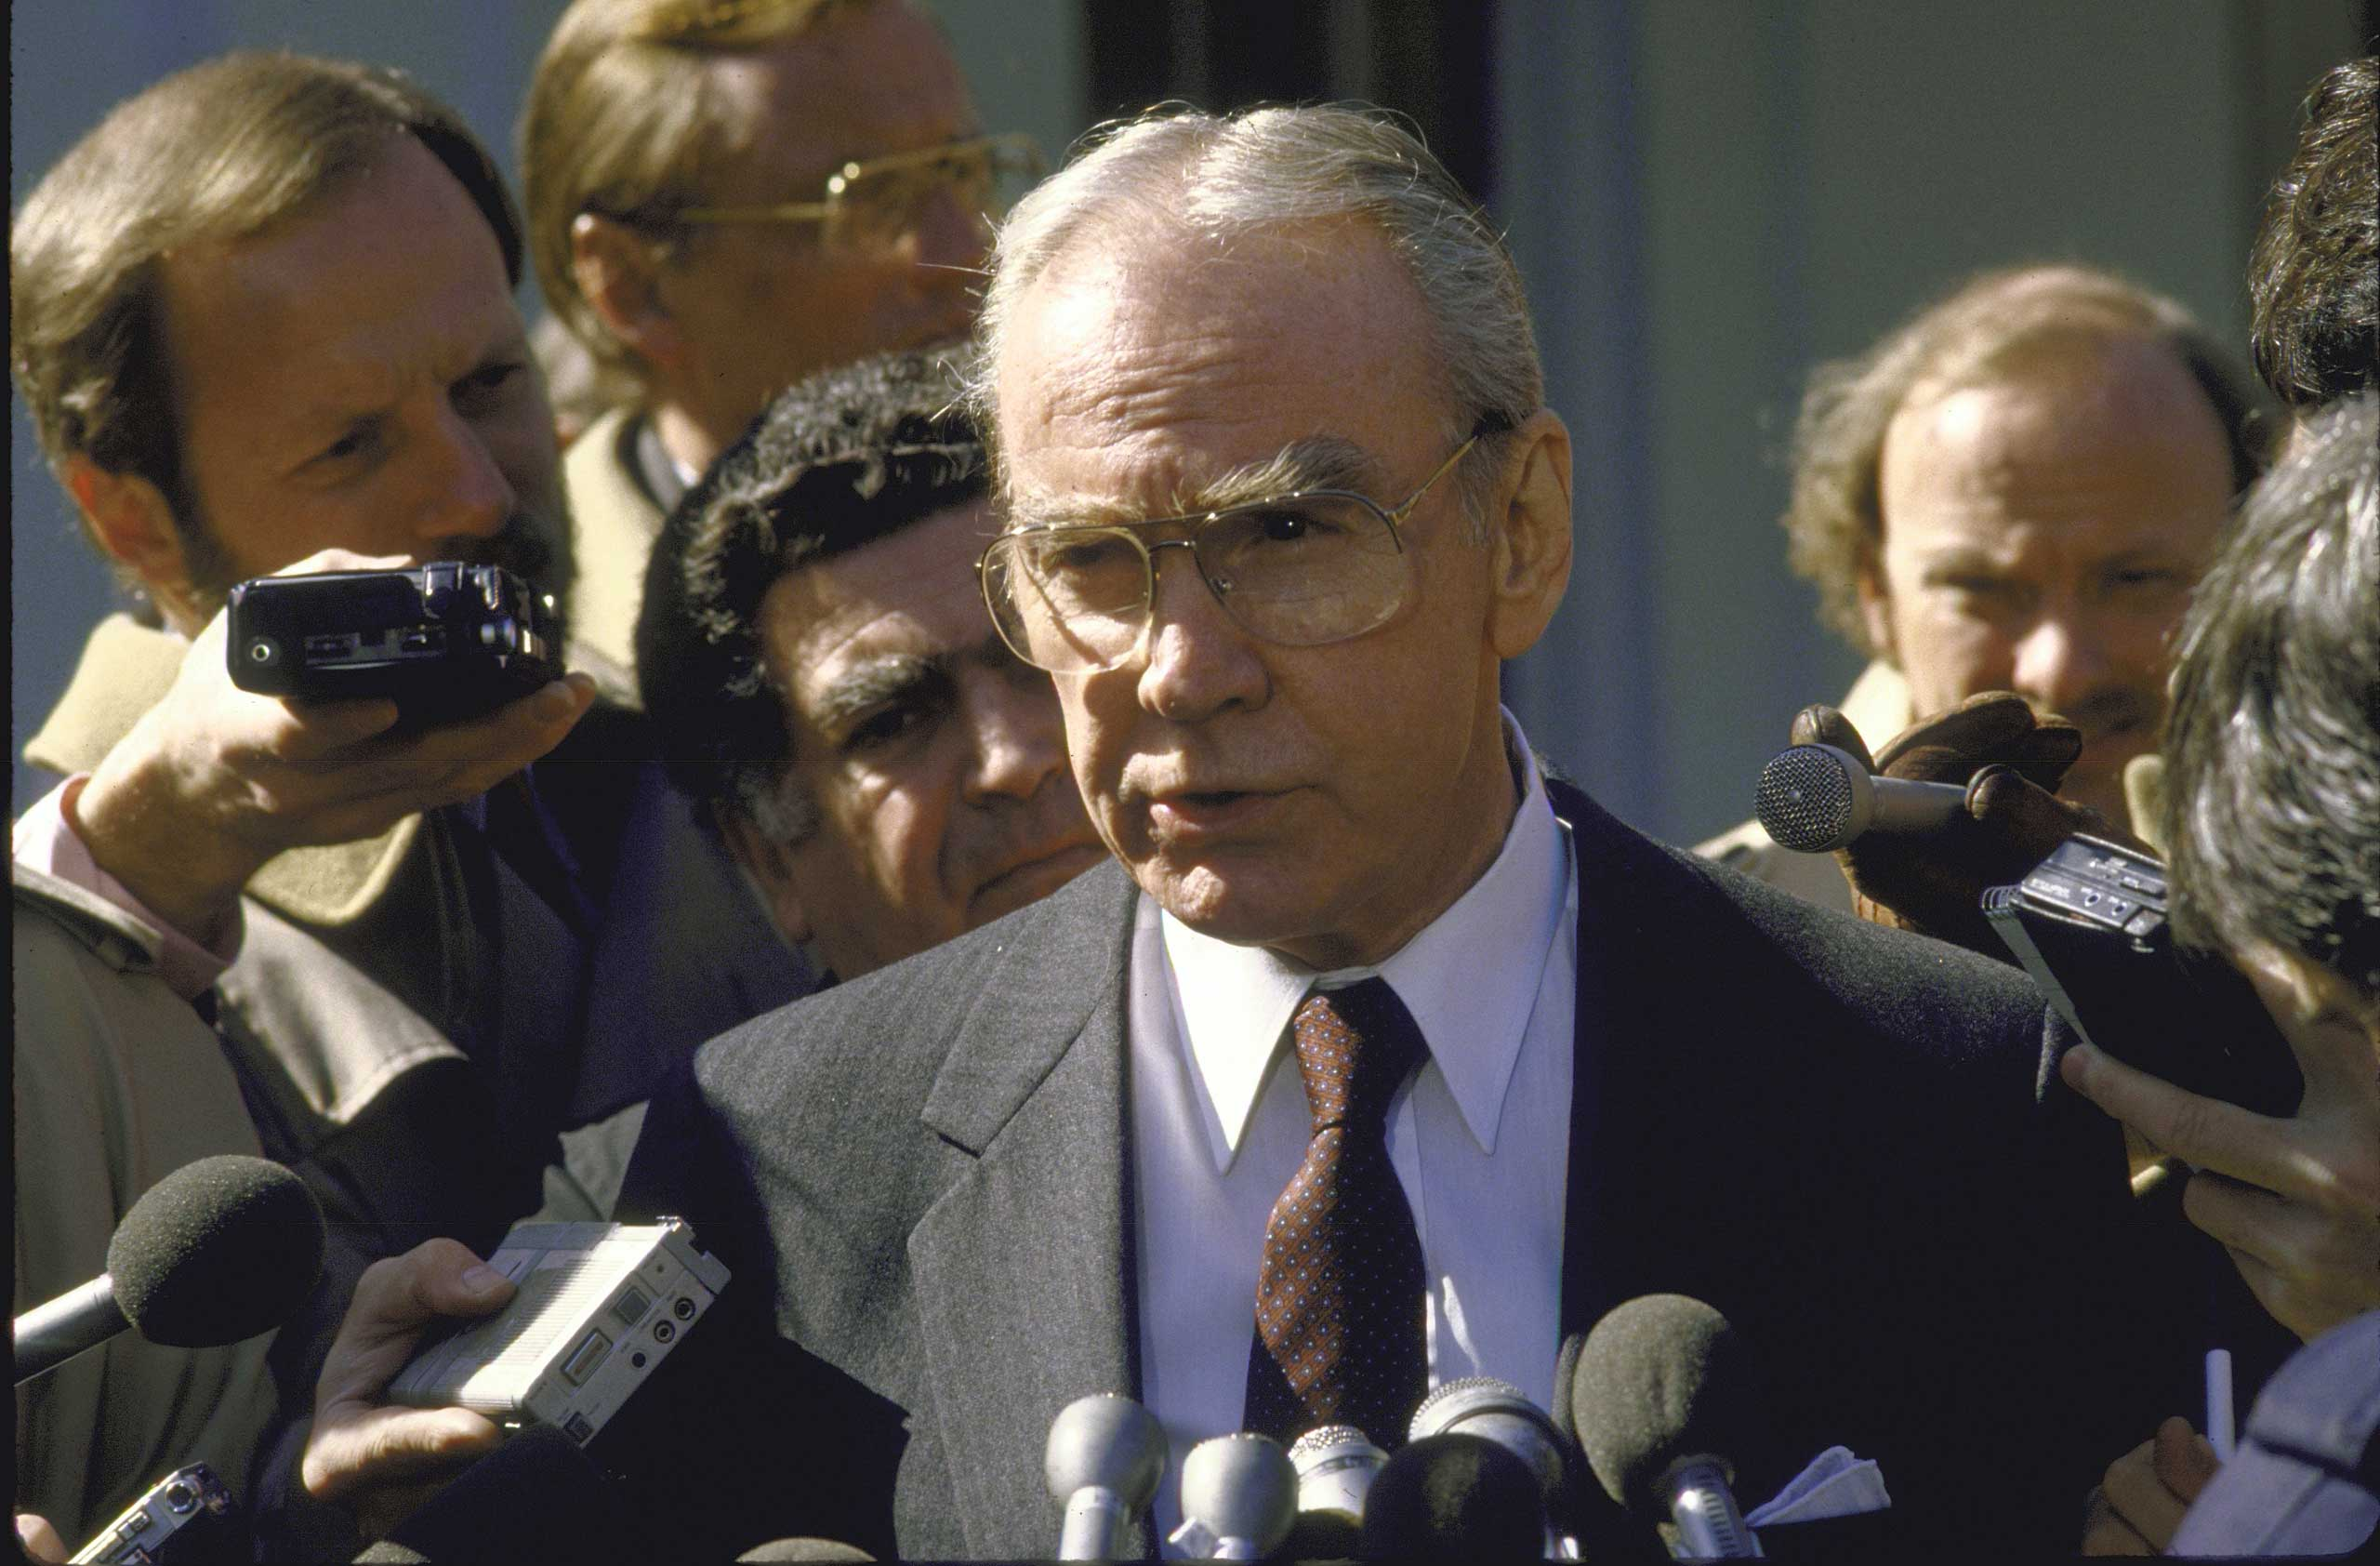 In 1989, Rep. Jim Wright (D-Texas) became the first House Speaker to resign over scandal.  He abdicated his post after a yearlong ethics investigation found he had accepted improper gifts and mishandled his speaking profits, among other finance violations.